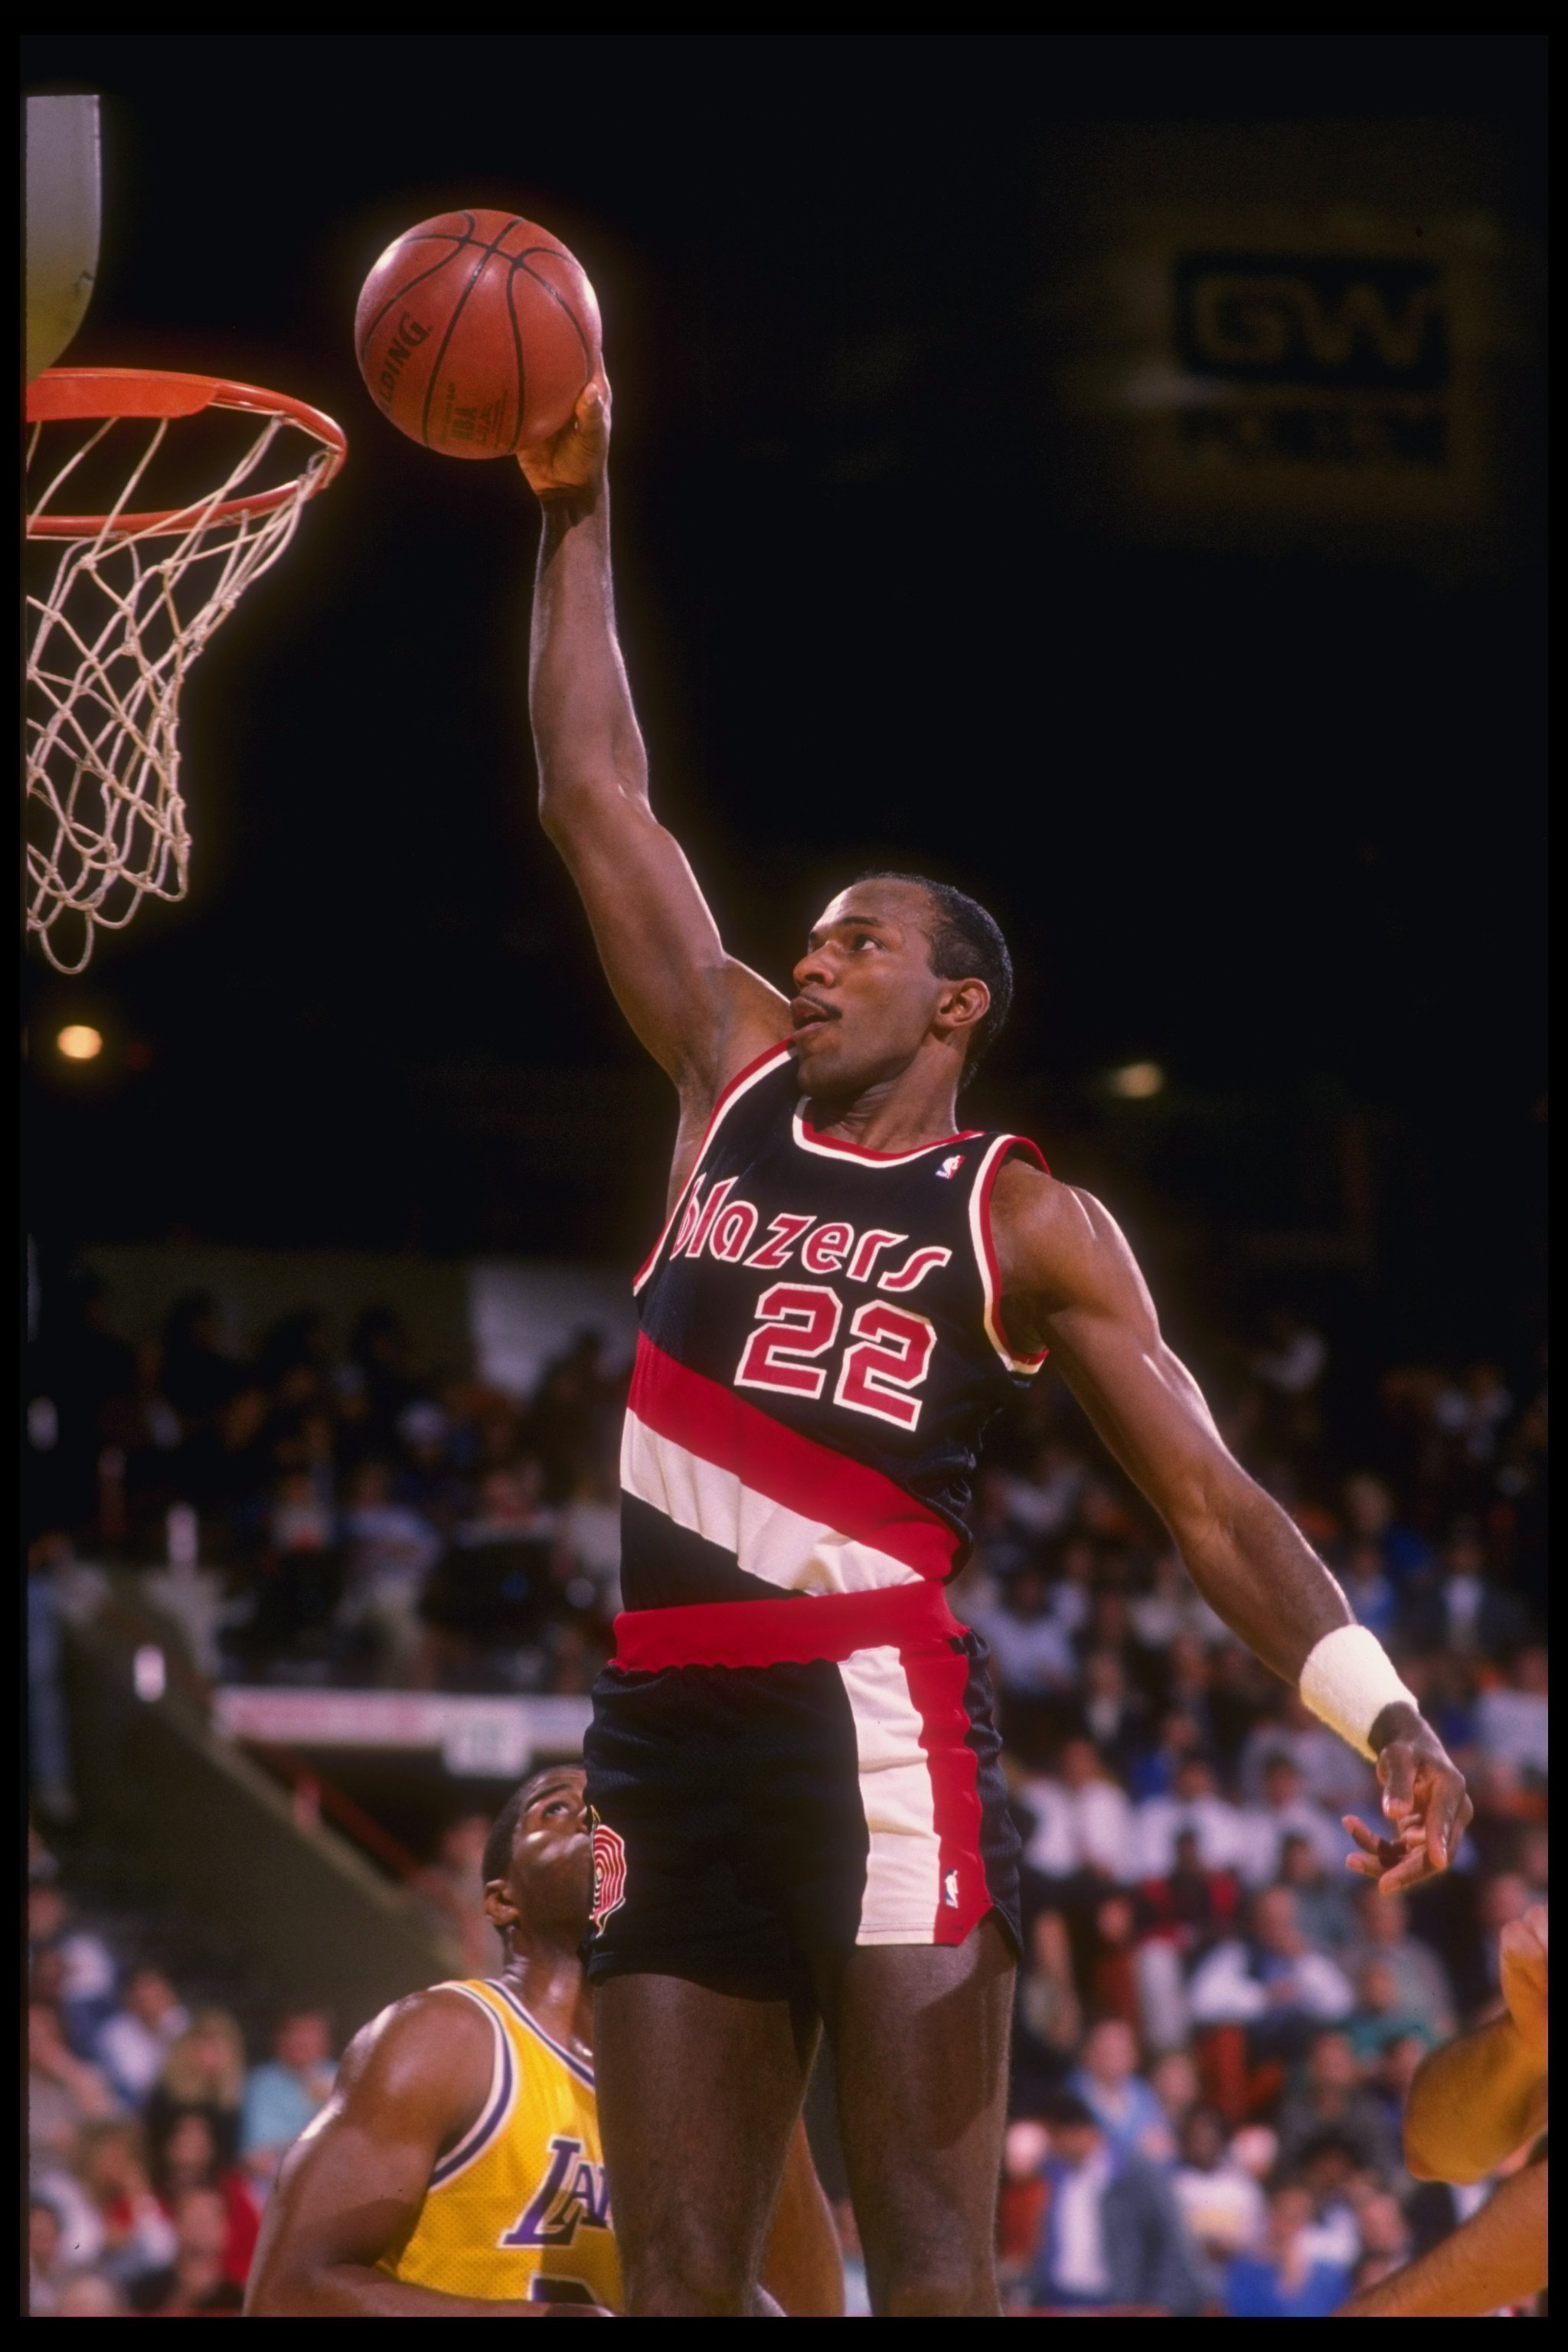 Guard Clyde Drexler of the Portland Trail Blazers goes up for two during a game.